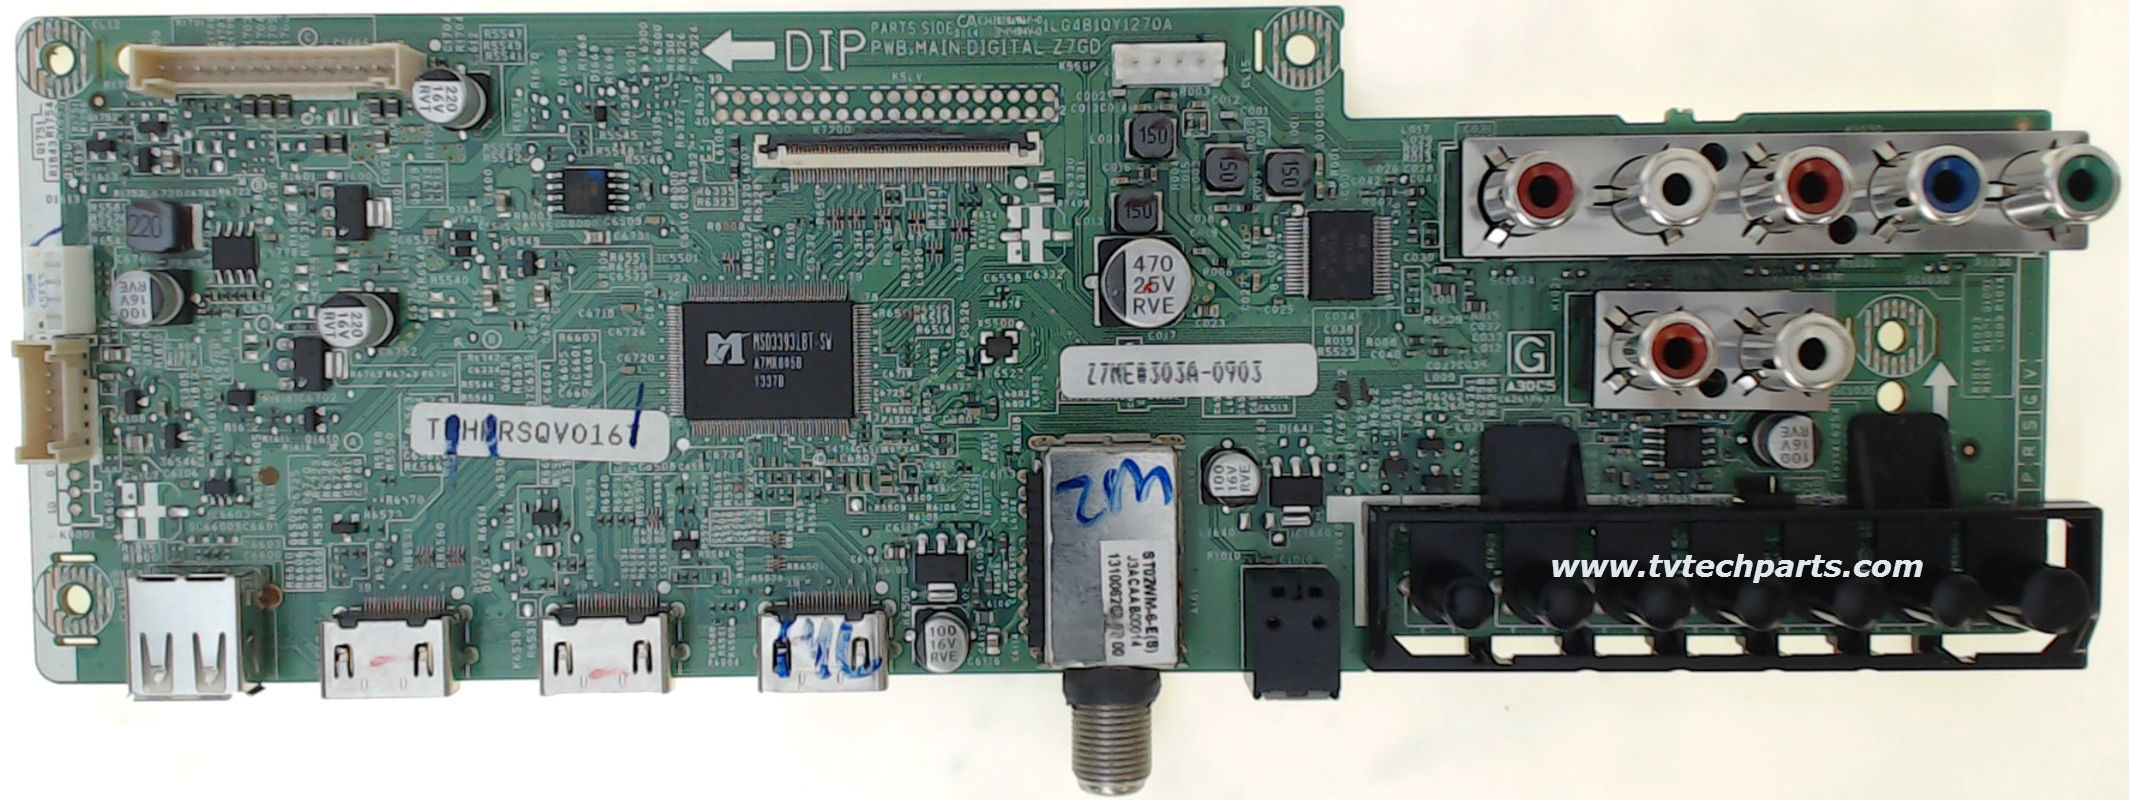 Sanyo TV Model DP55D33 Main Audio Video HDMI Tuner Board Part Number 1LG4B10Y117A0-Z7ME